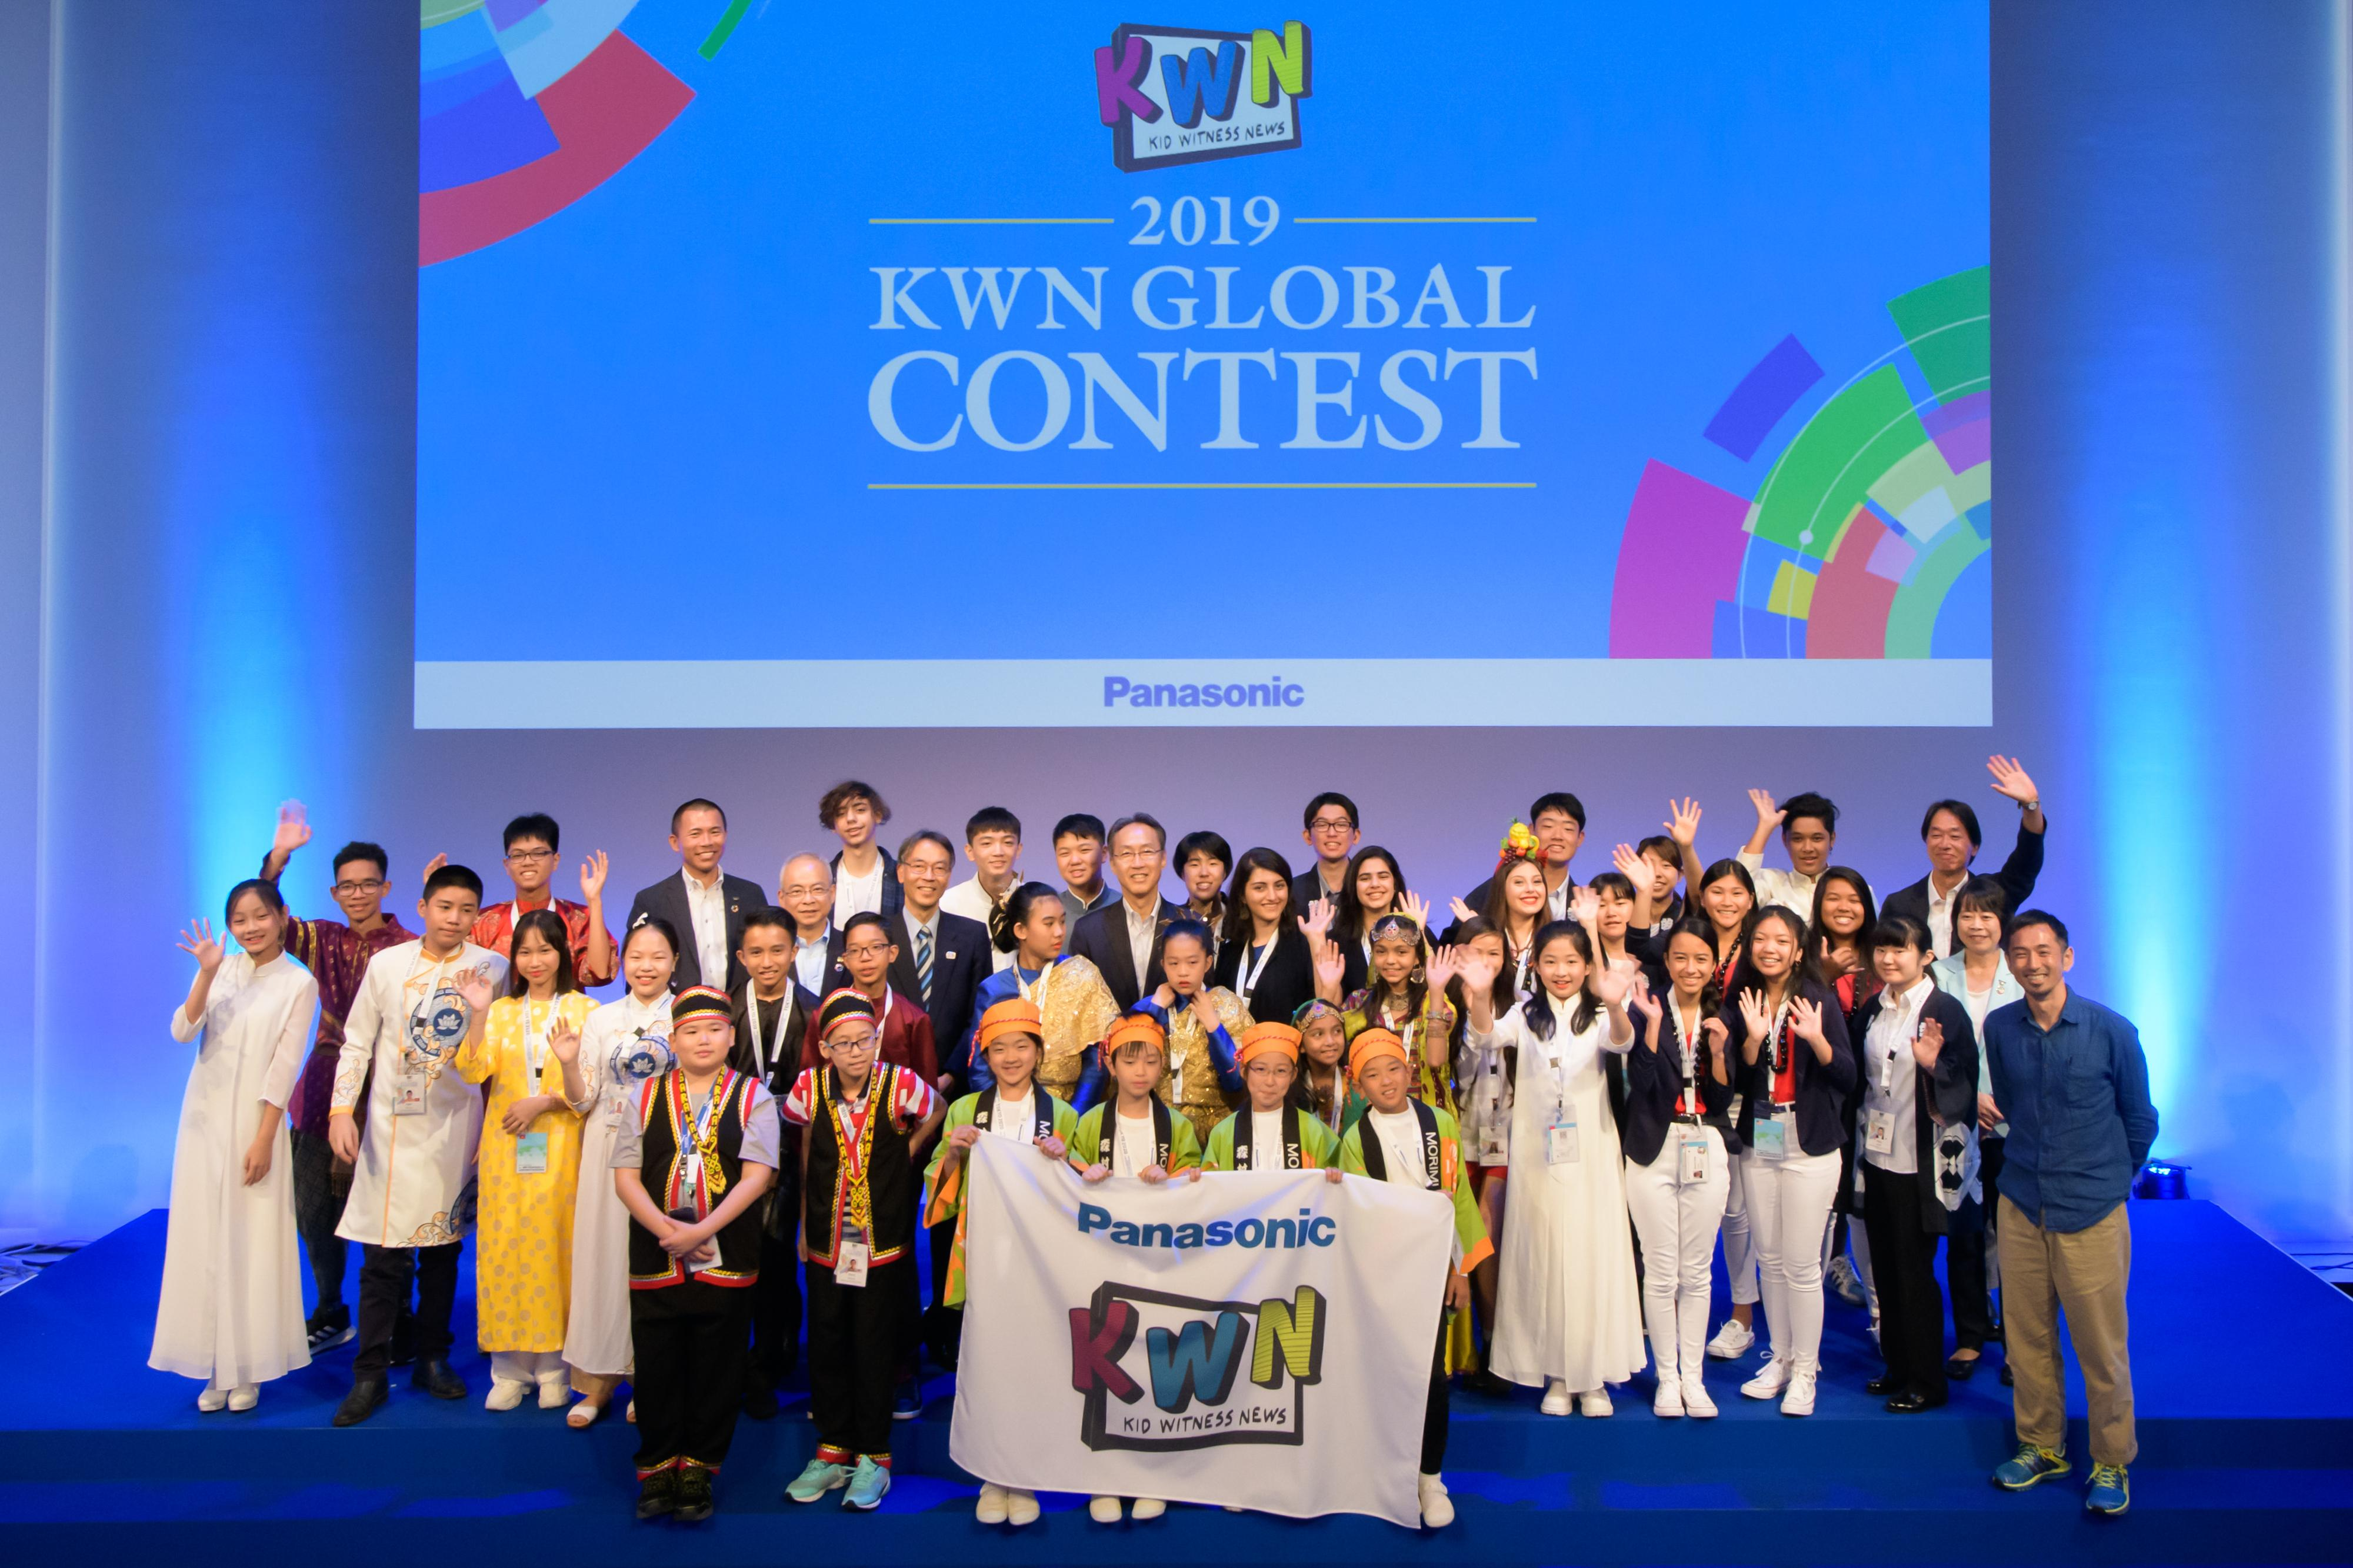 Photo: The awards ceremony for the Kid Witness News (KWN) Global Contest 2019